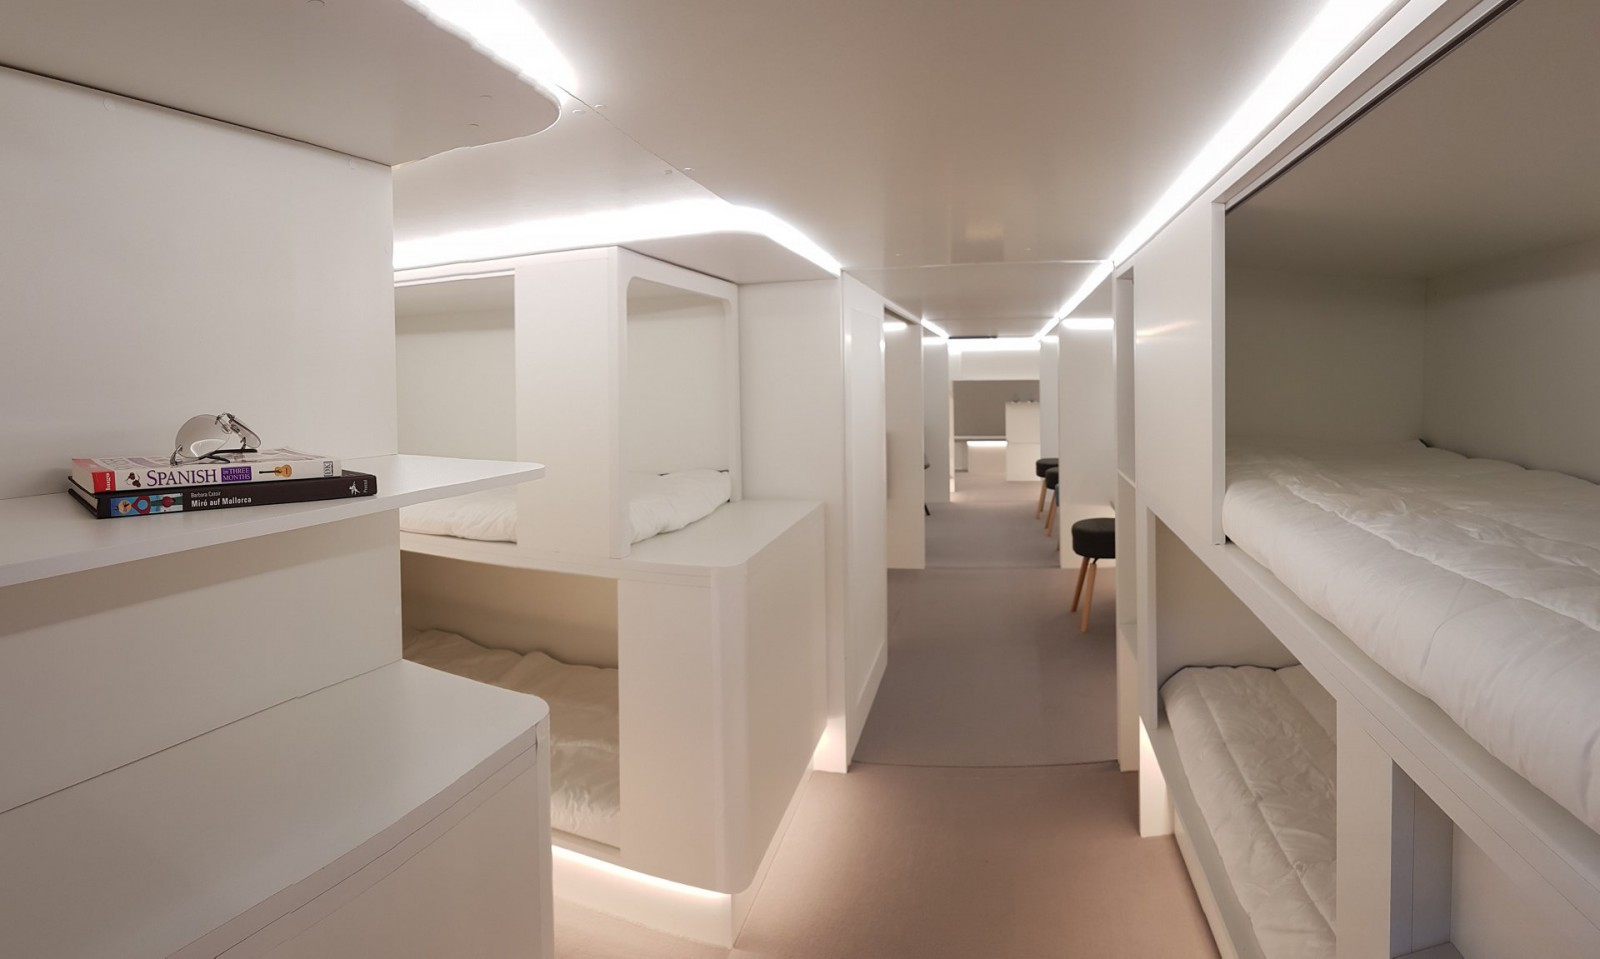 Mile High Snug: Airbus To Build Sleeping Berths In Cargo Hold